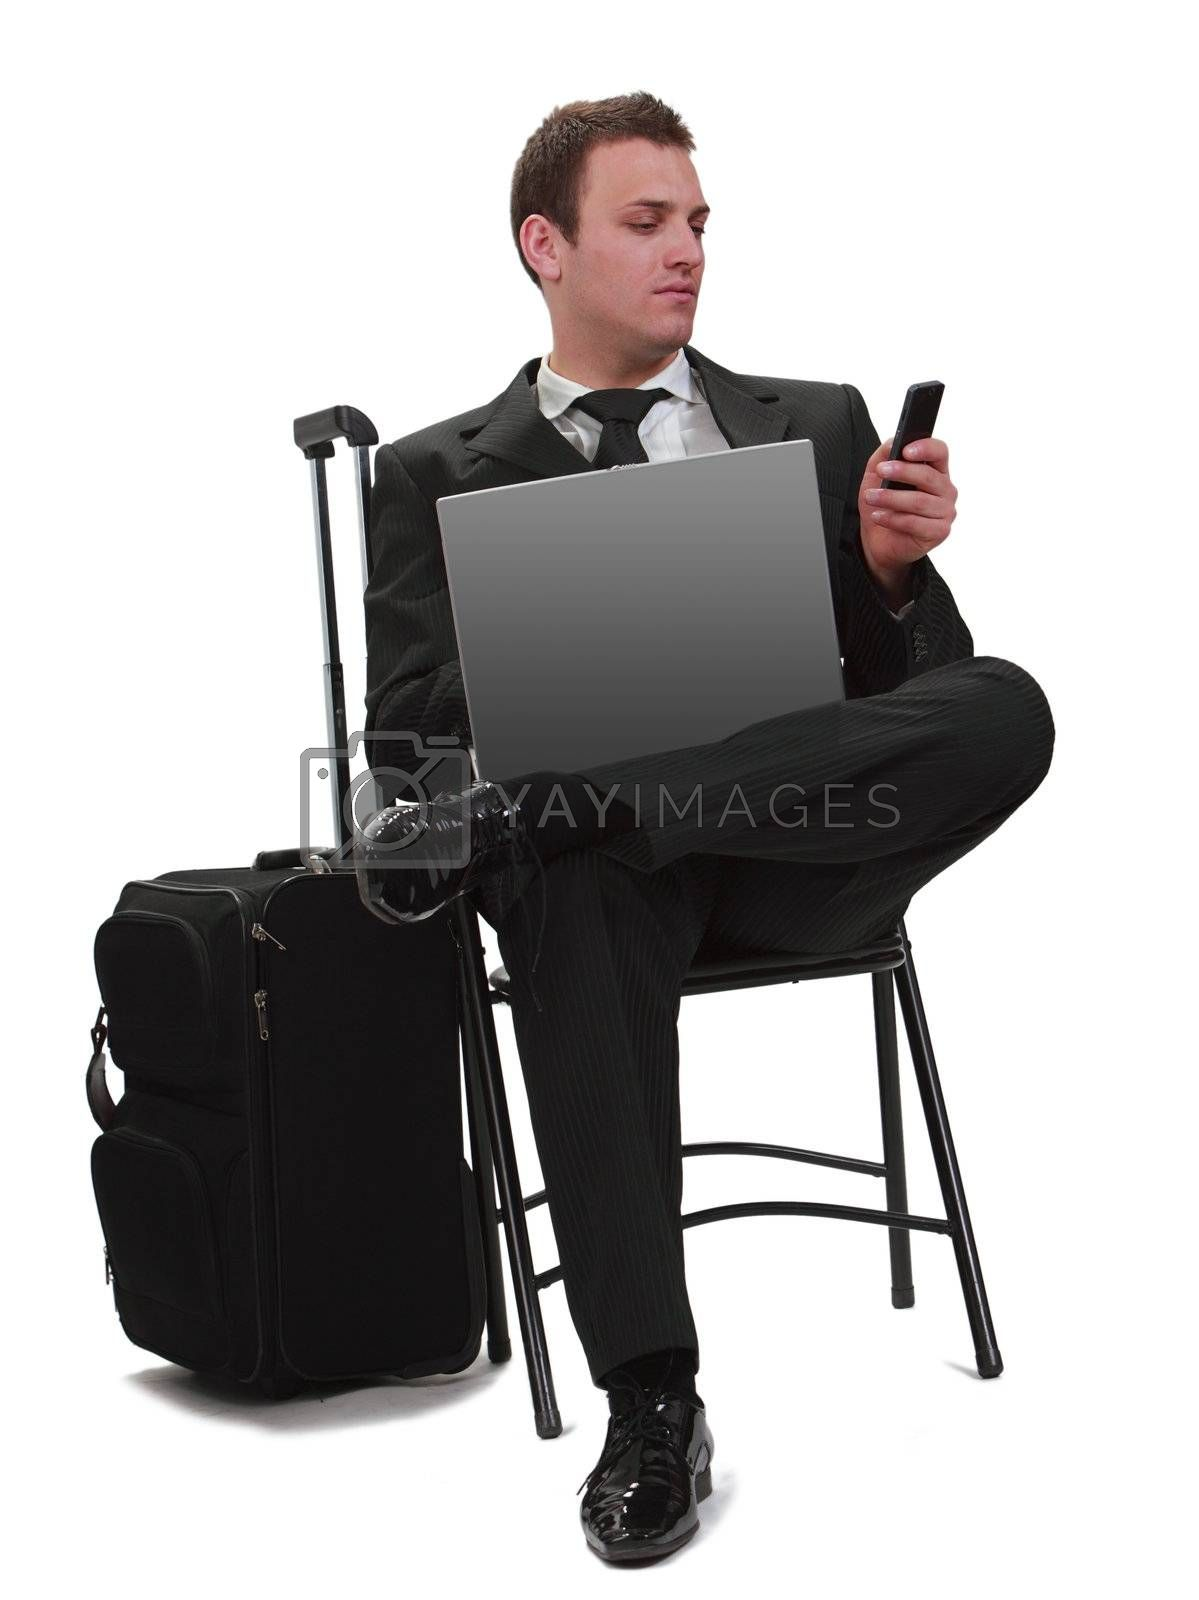 Young businessman reading a phone message while she is sitting with his laptop next to her suitcase,isolated against a white background.